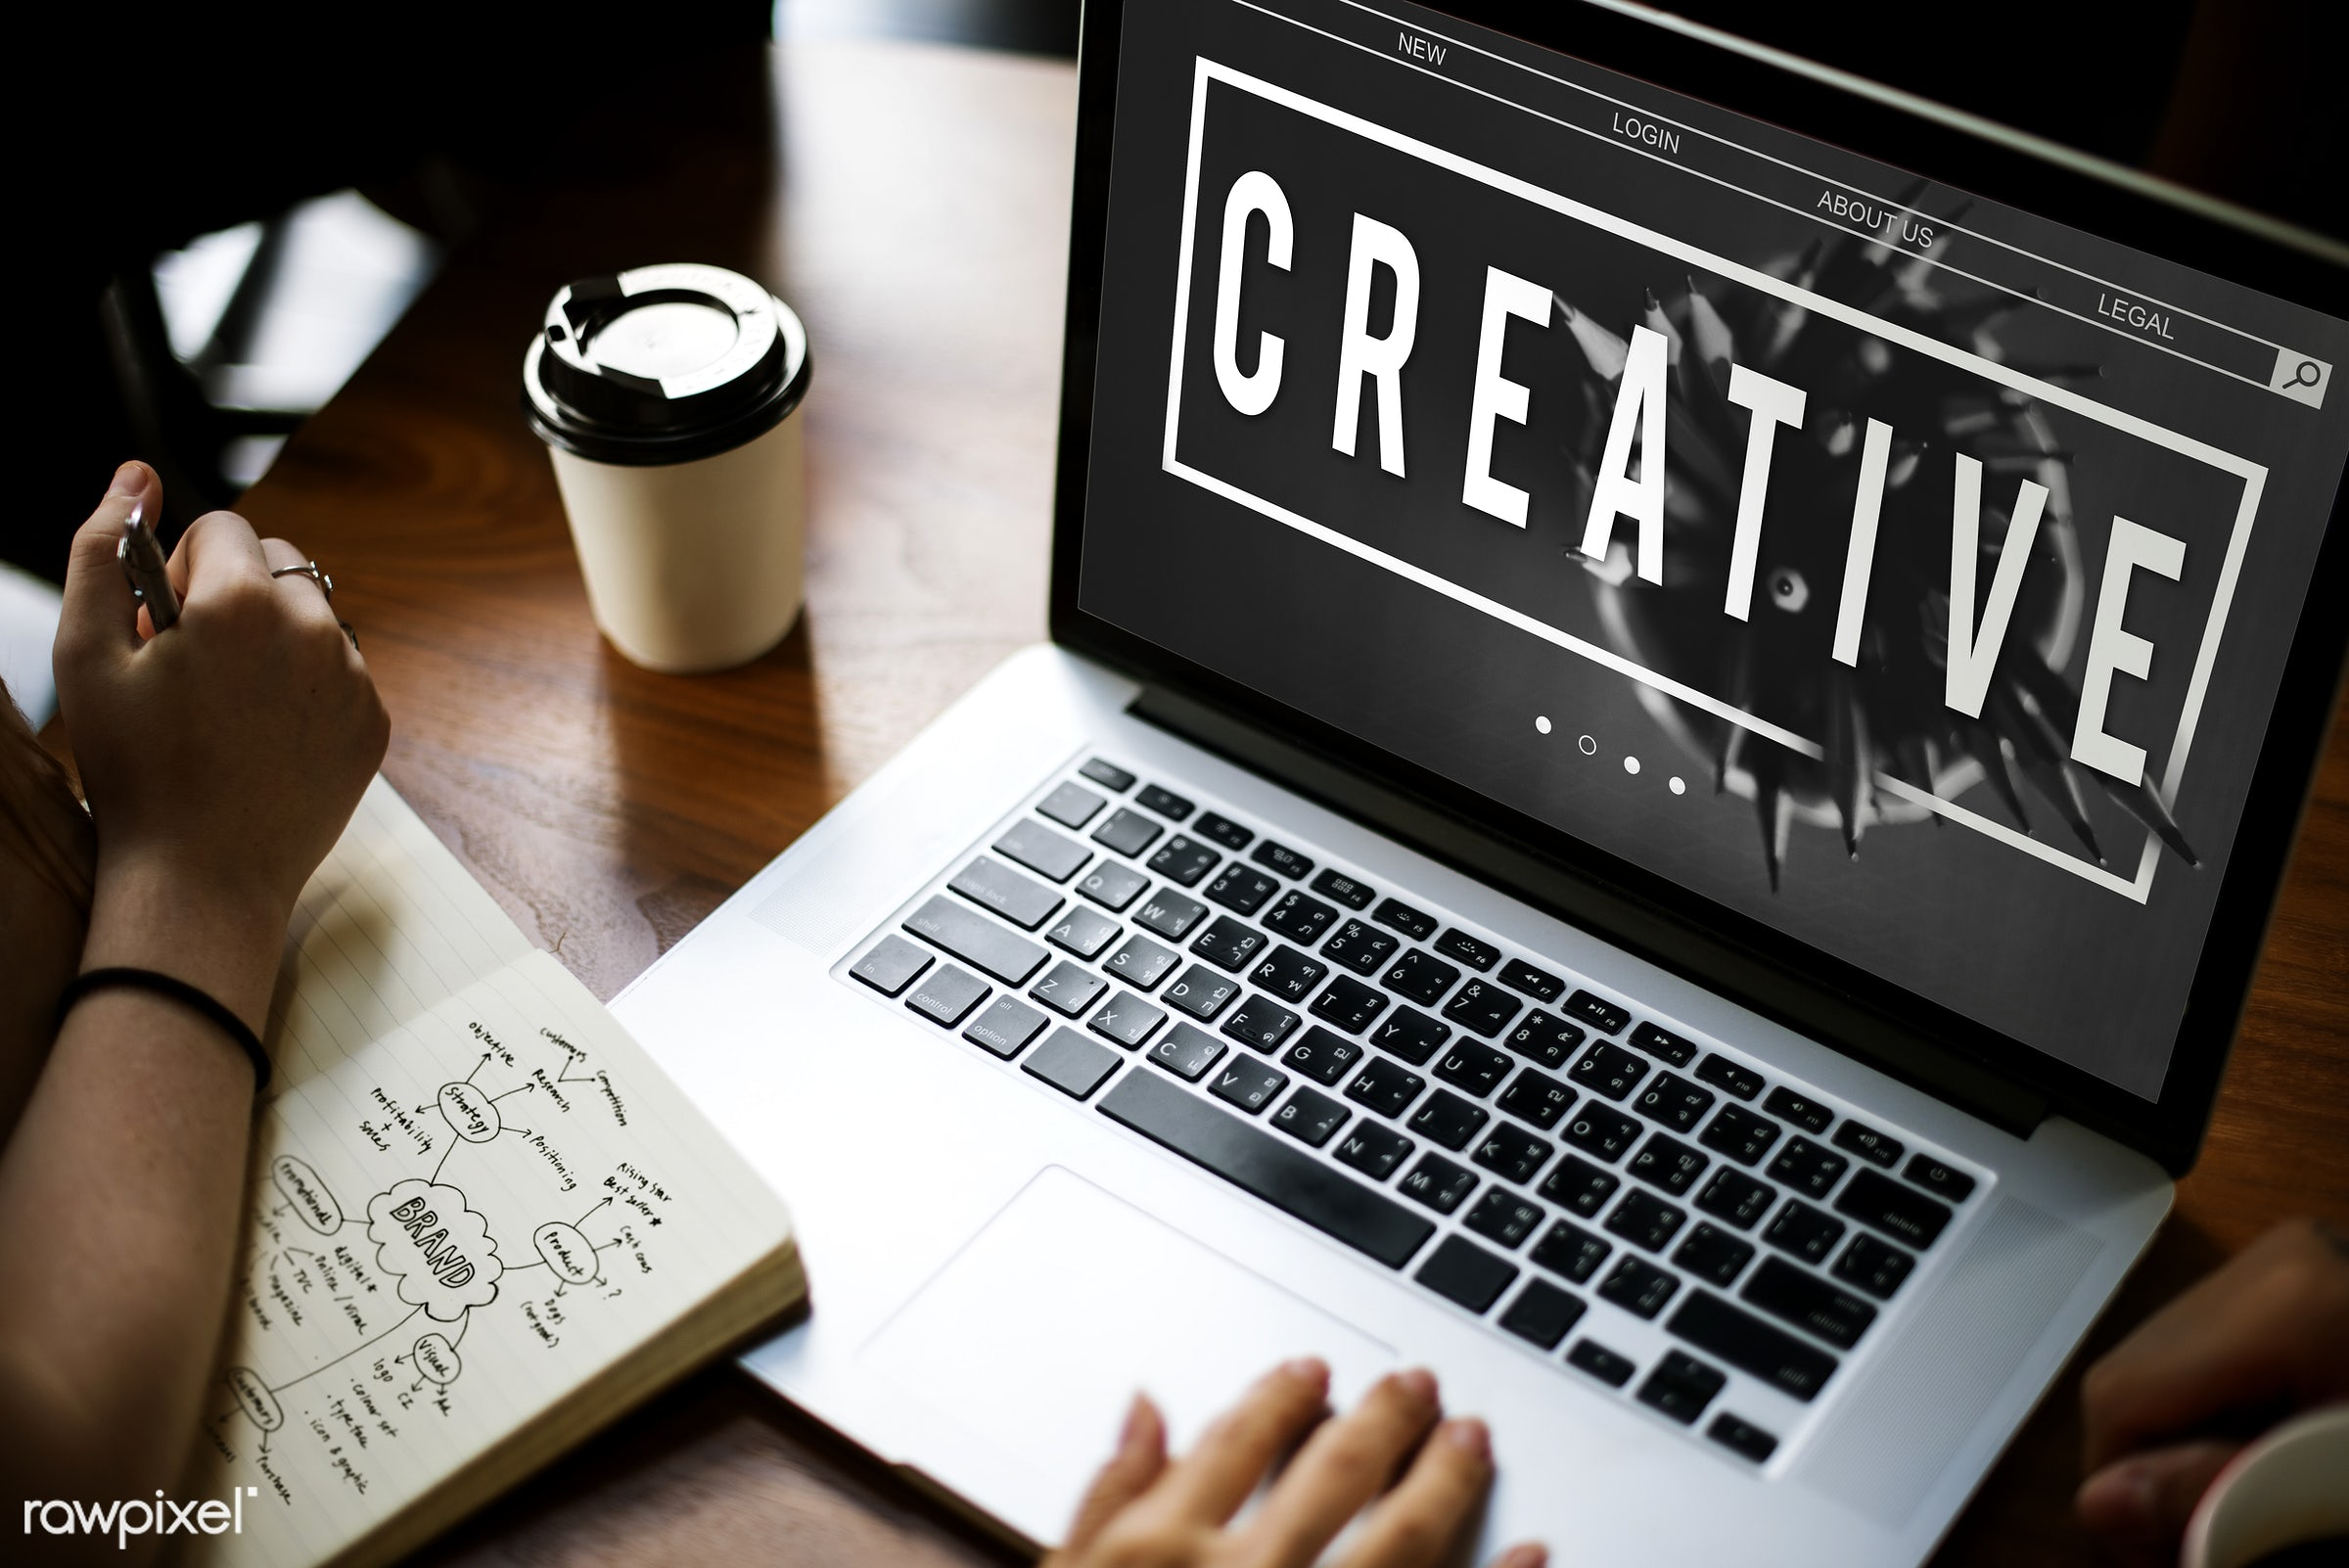 about, about us, be creative, browsing, coffee cup, concept, creative, creativity, design, device, digital, digital device,...